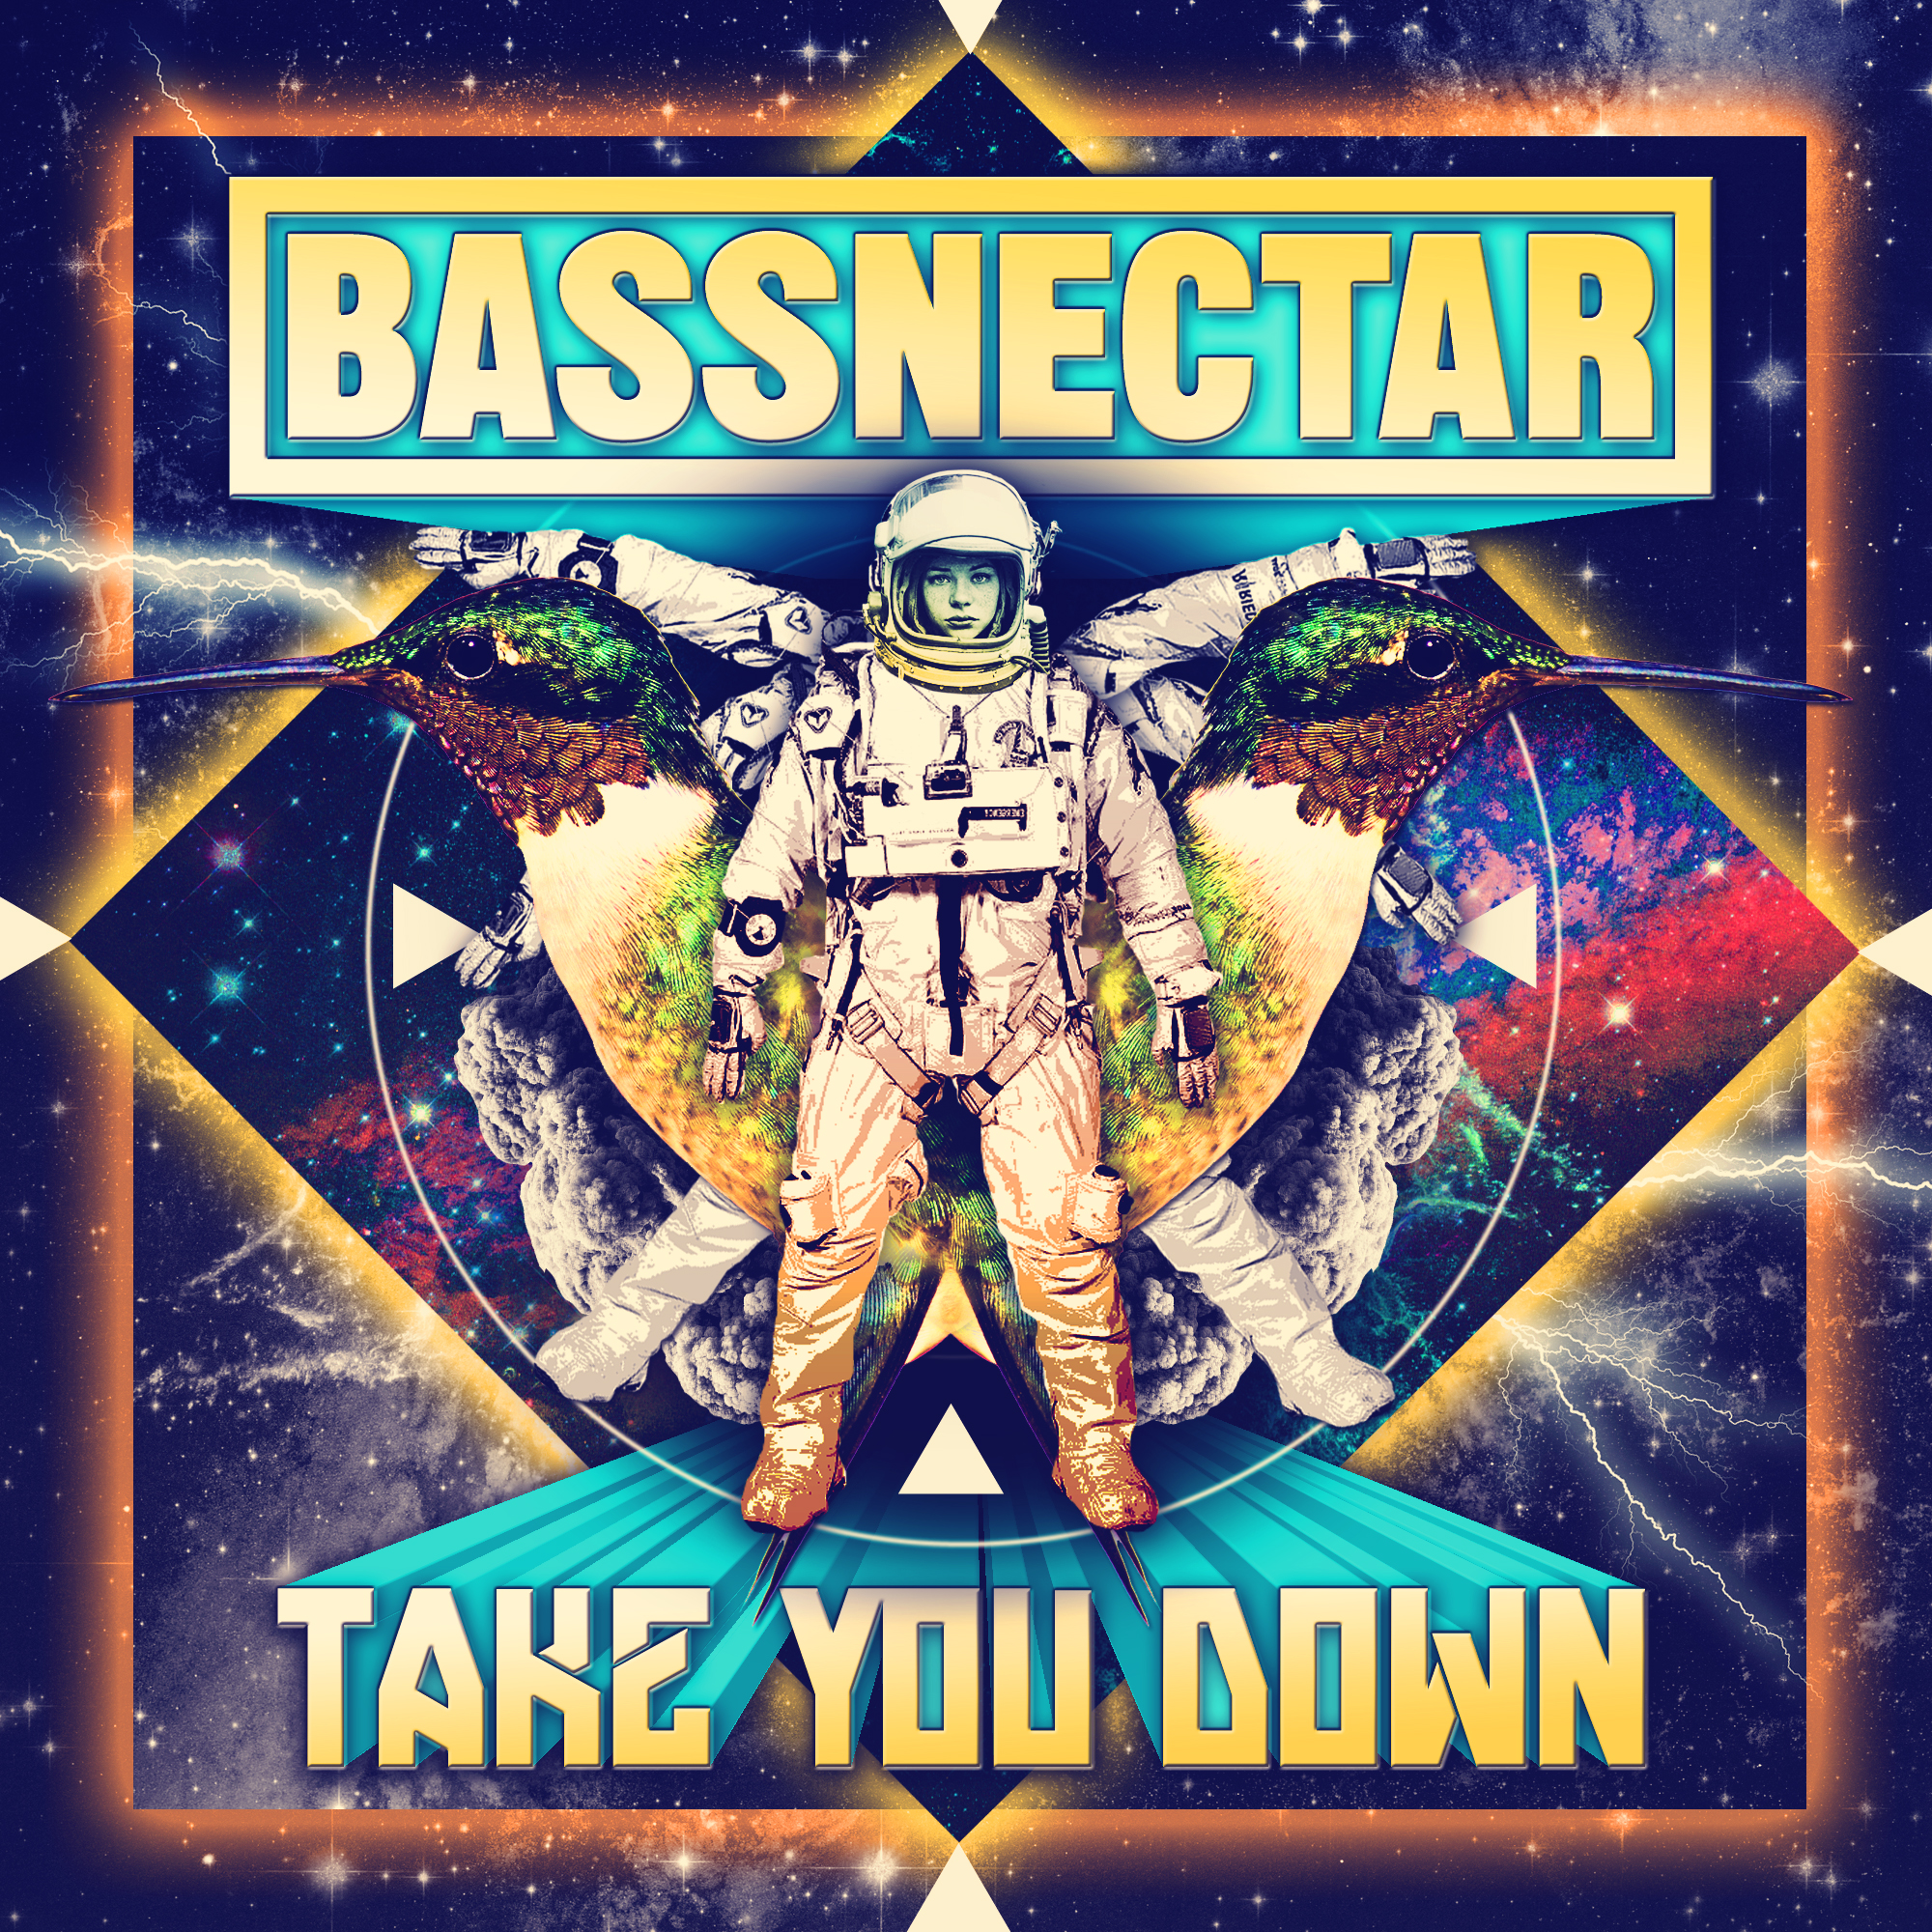 Bassnectar - Take You Down Download